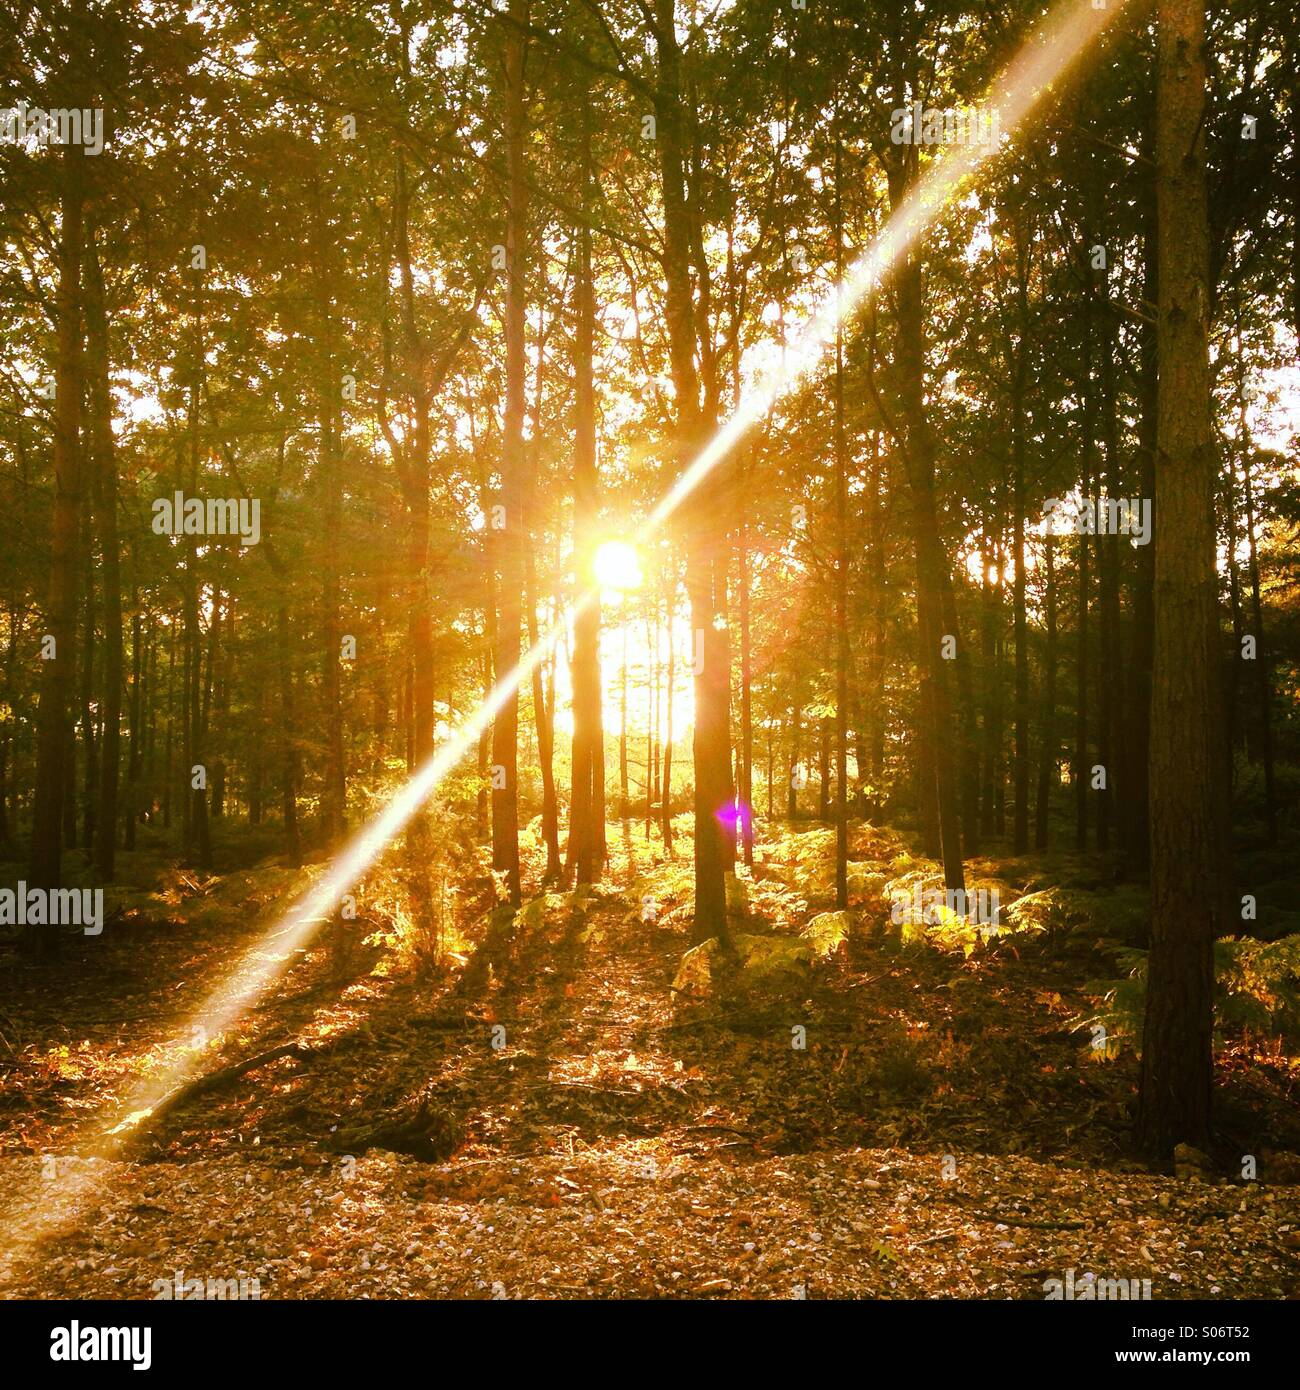 Sunlight through the trees - Stock Image